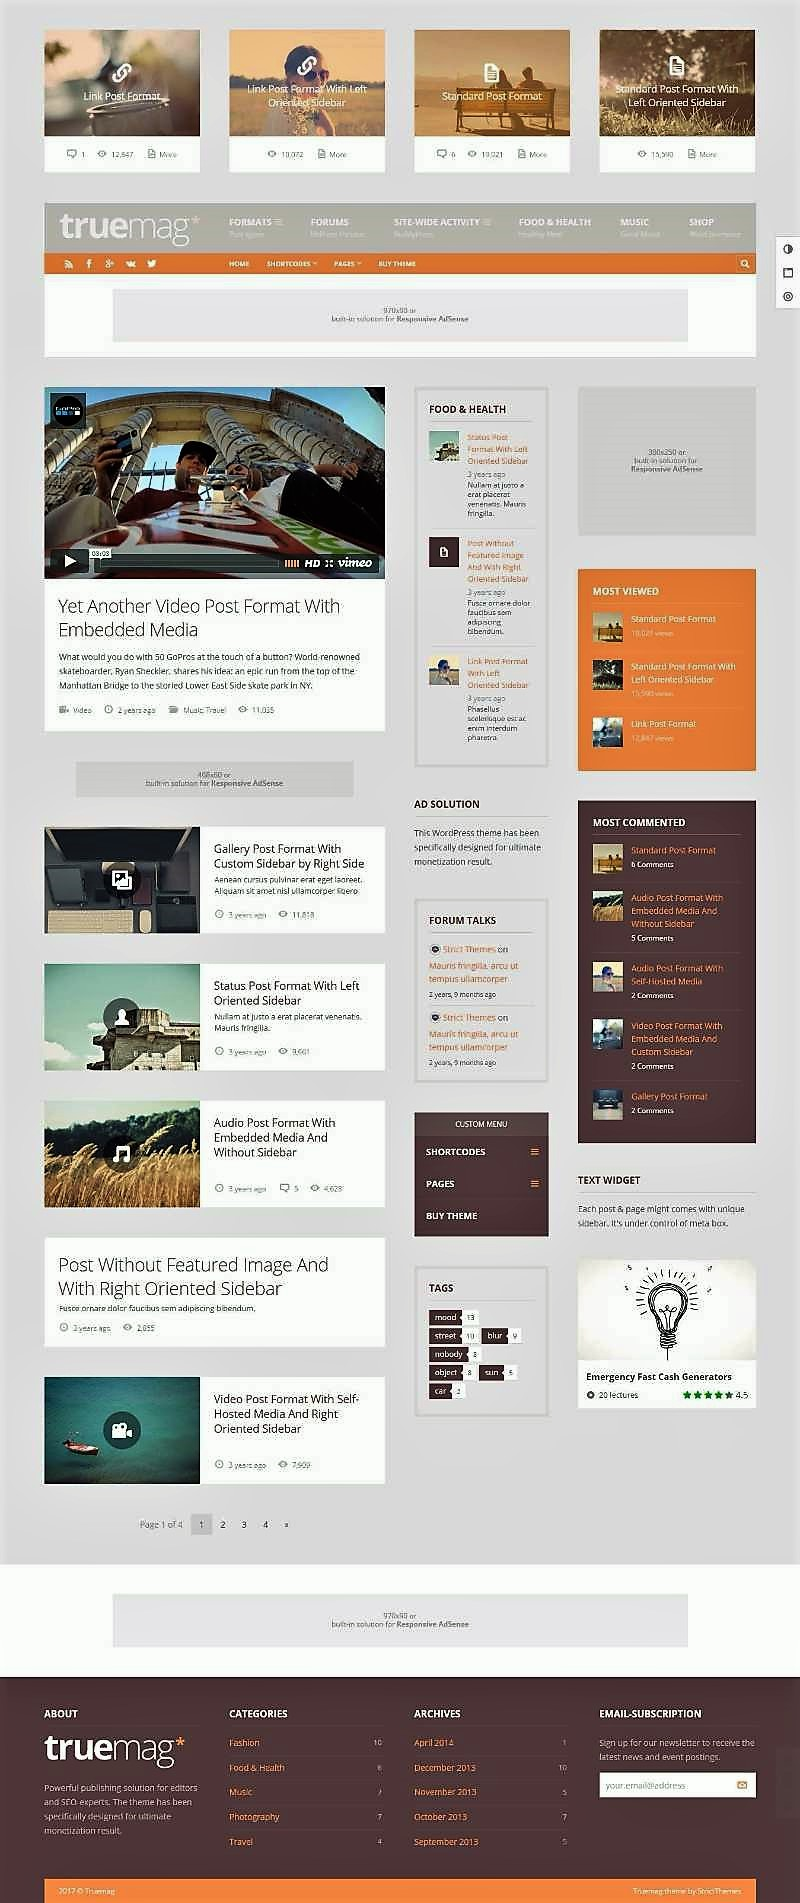 premium Adsense ready wordpress theme